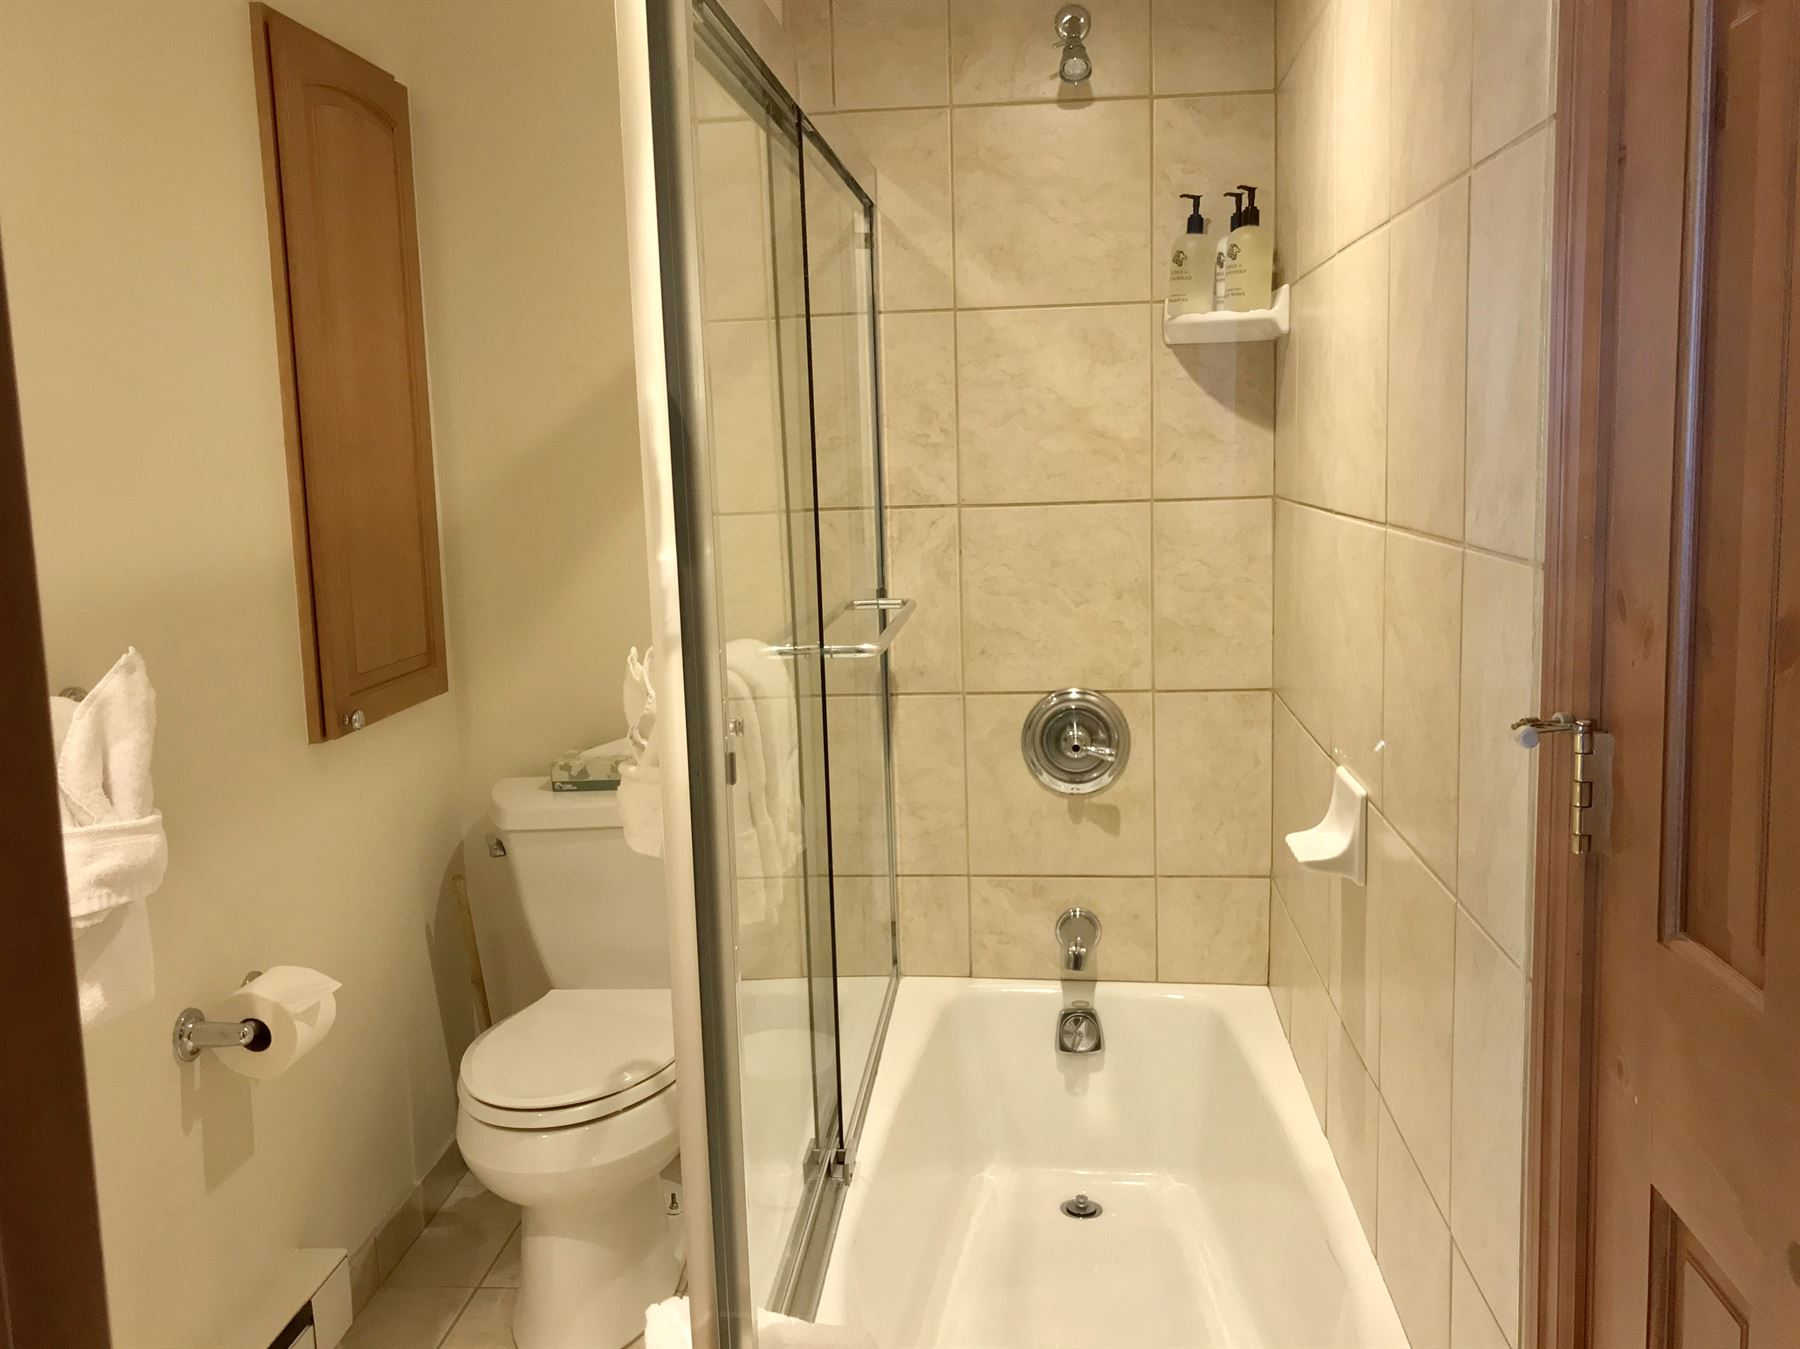 4BGold_guest bath_with tightly coordoned toilet with tub and shower combo next to it